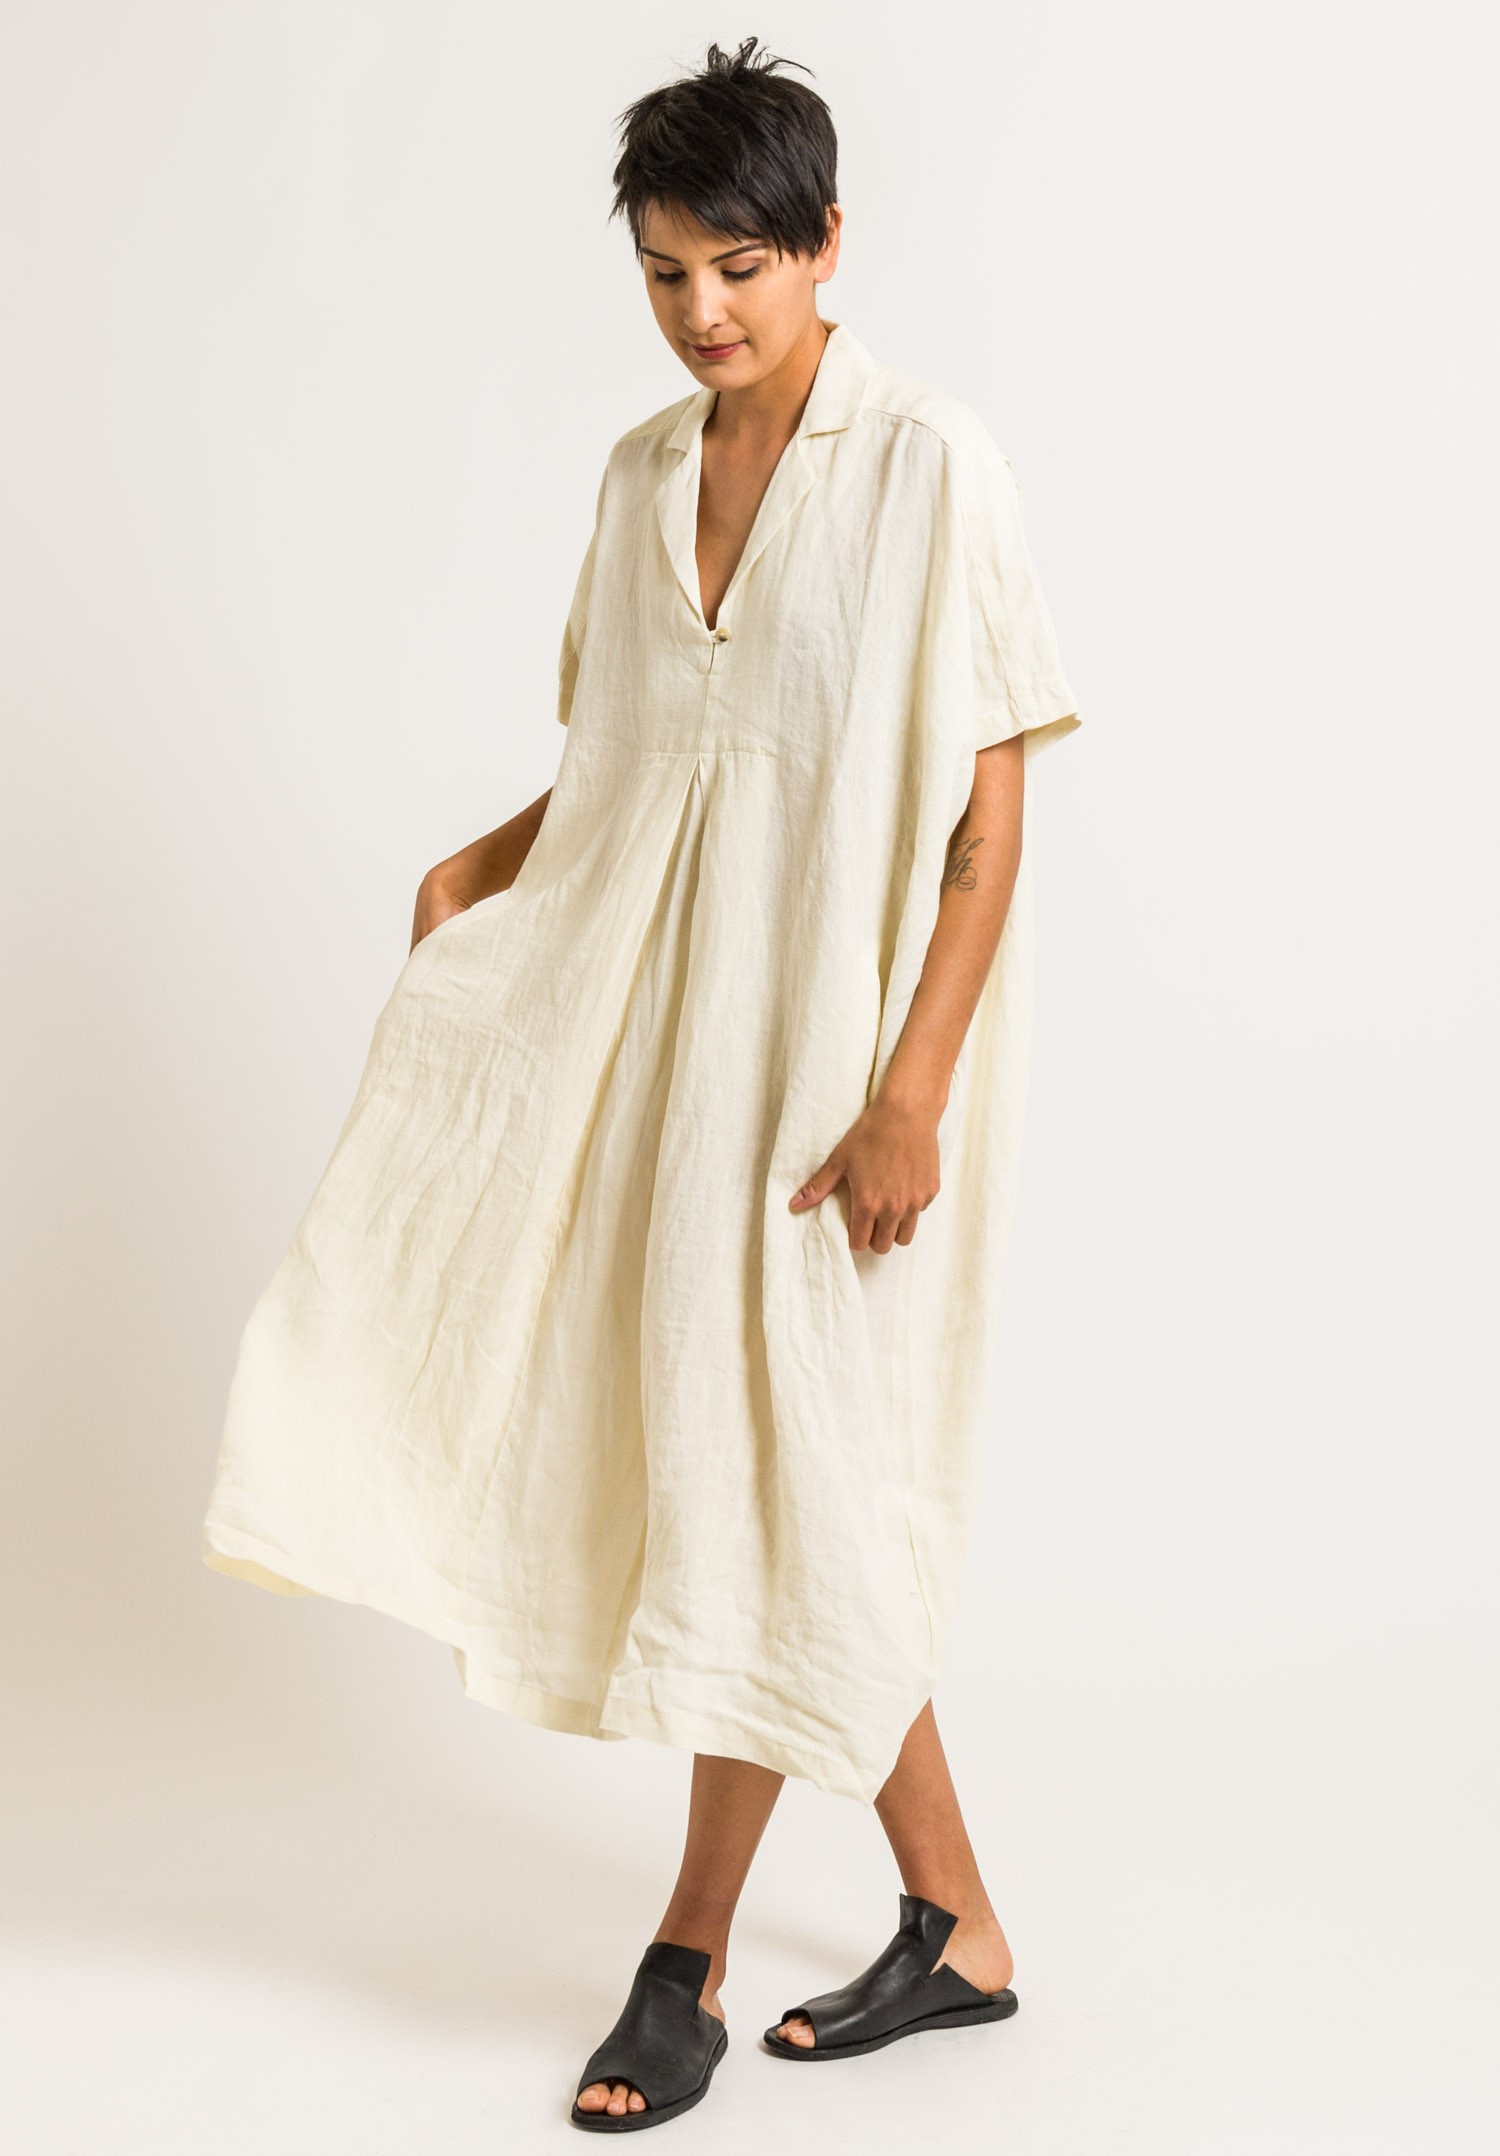 cced5b1260b Black Crane Linen Kite Dress in Cream